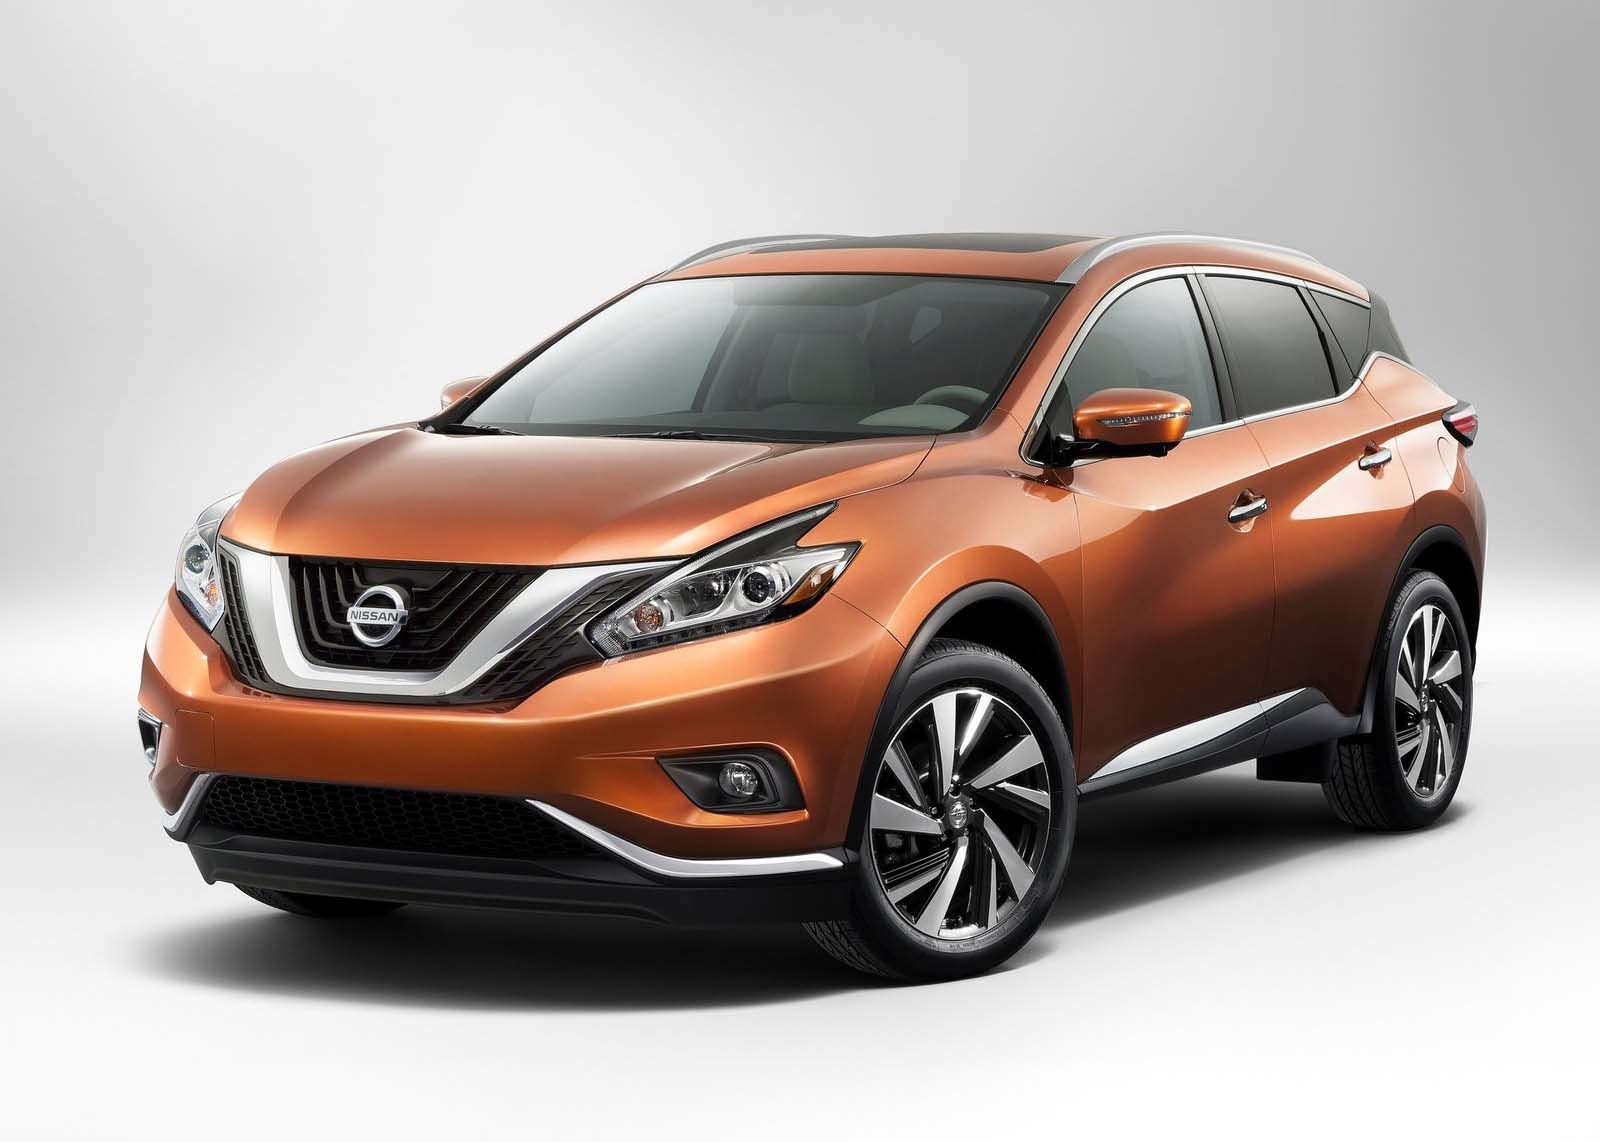 AllNew 2015 Nissan Murano (With images) Nissan murano